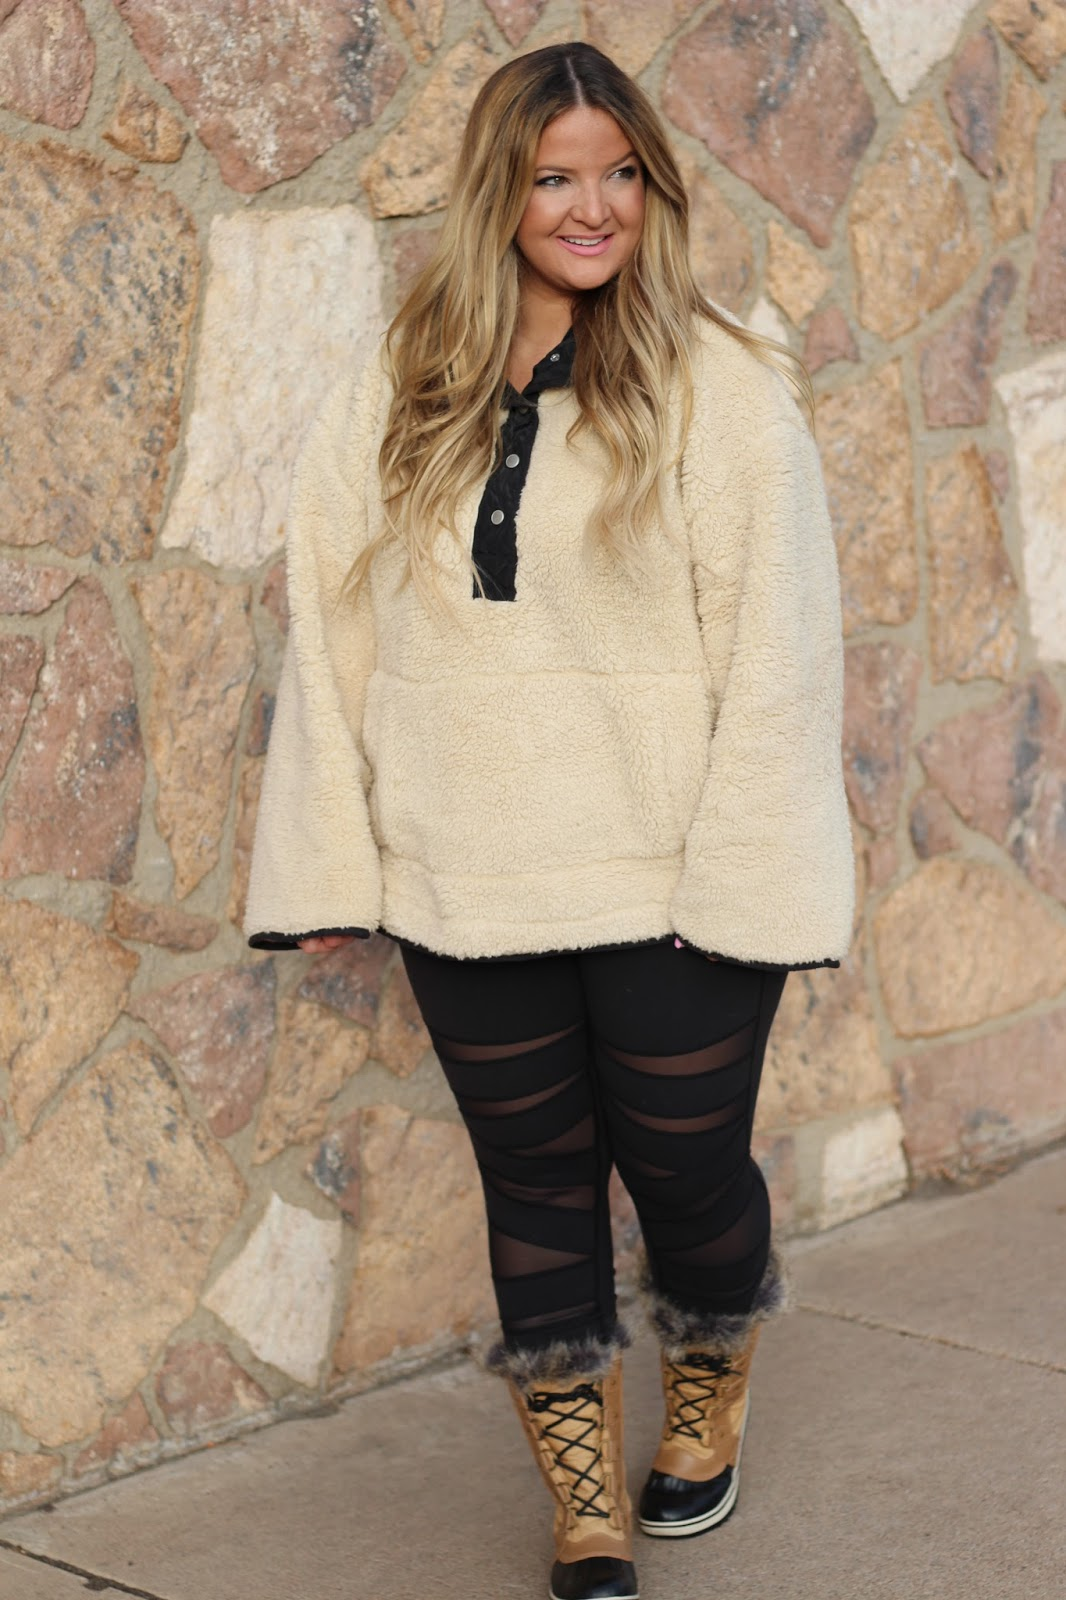 Nordstrom cozy sweater outfit by popular Denver fashion blogger Delayna Denaye